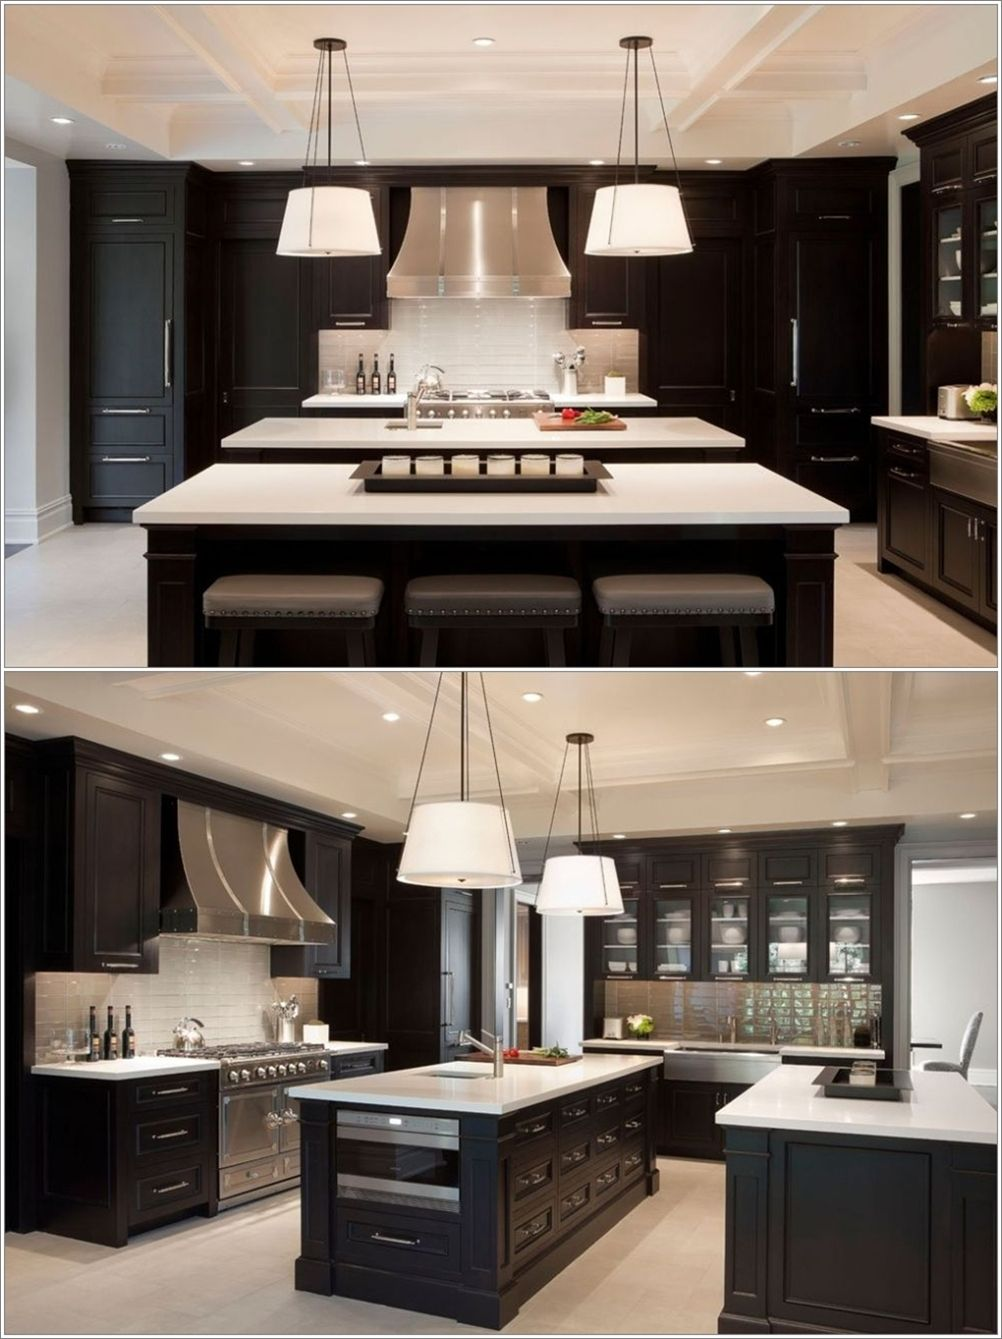 Tamara magel this kitchen with its so elegant and contemporary